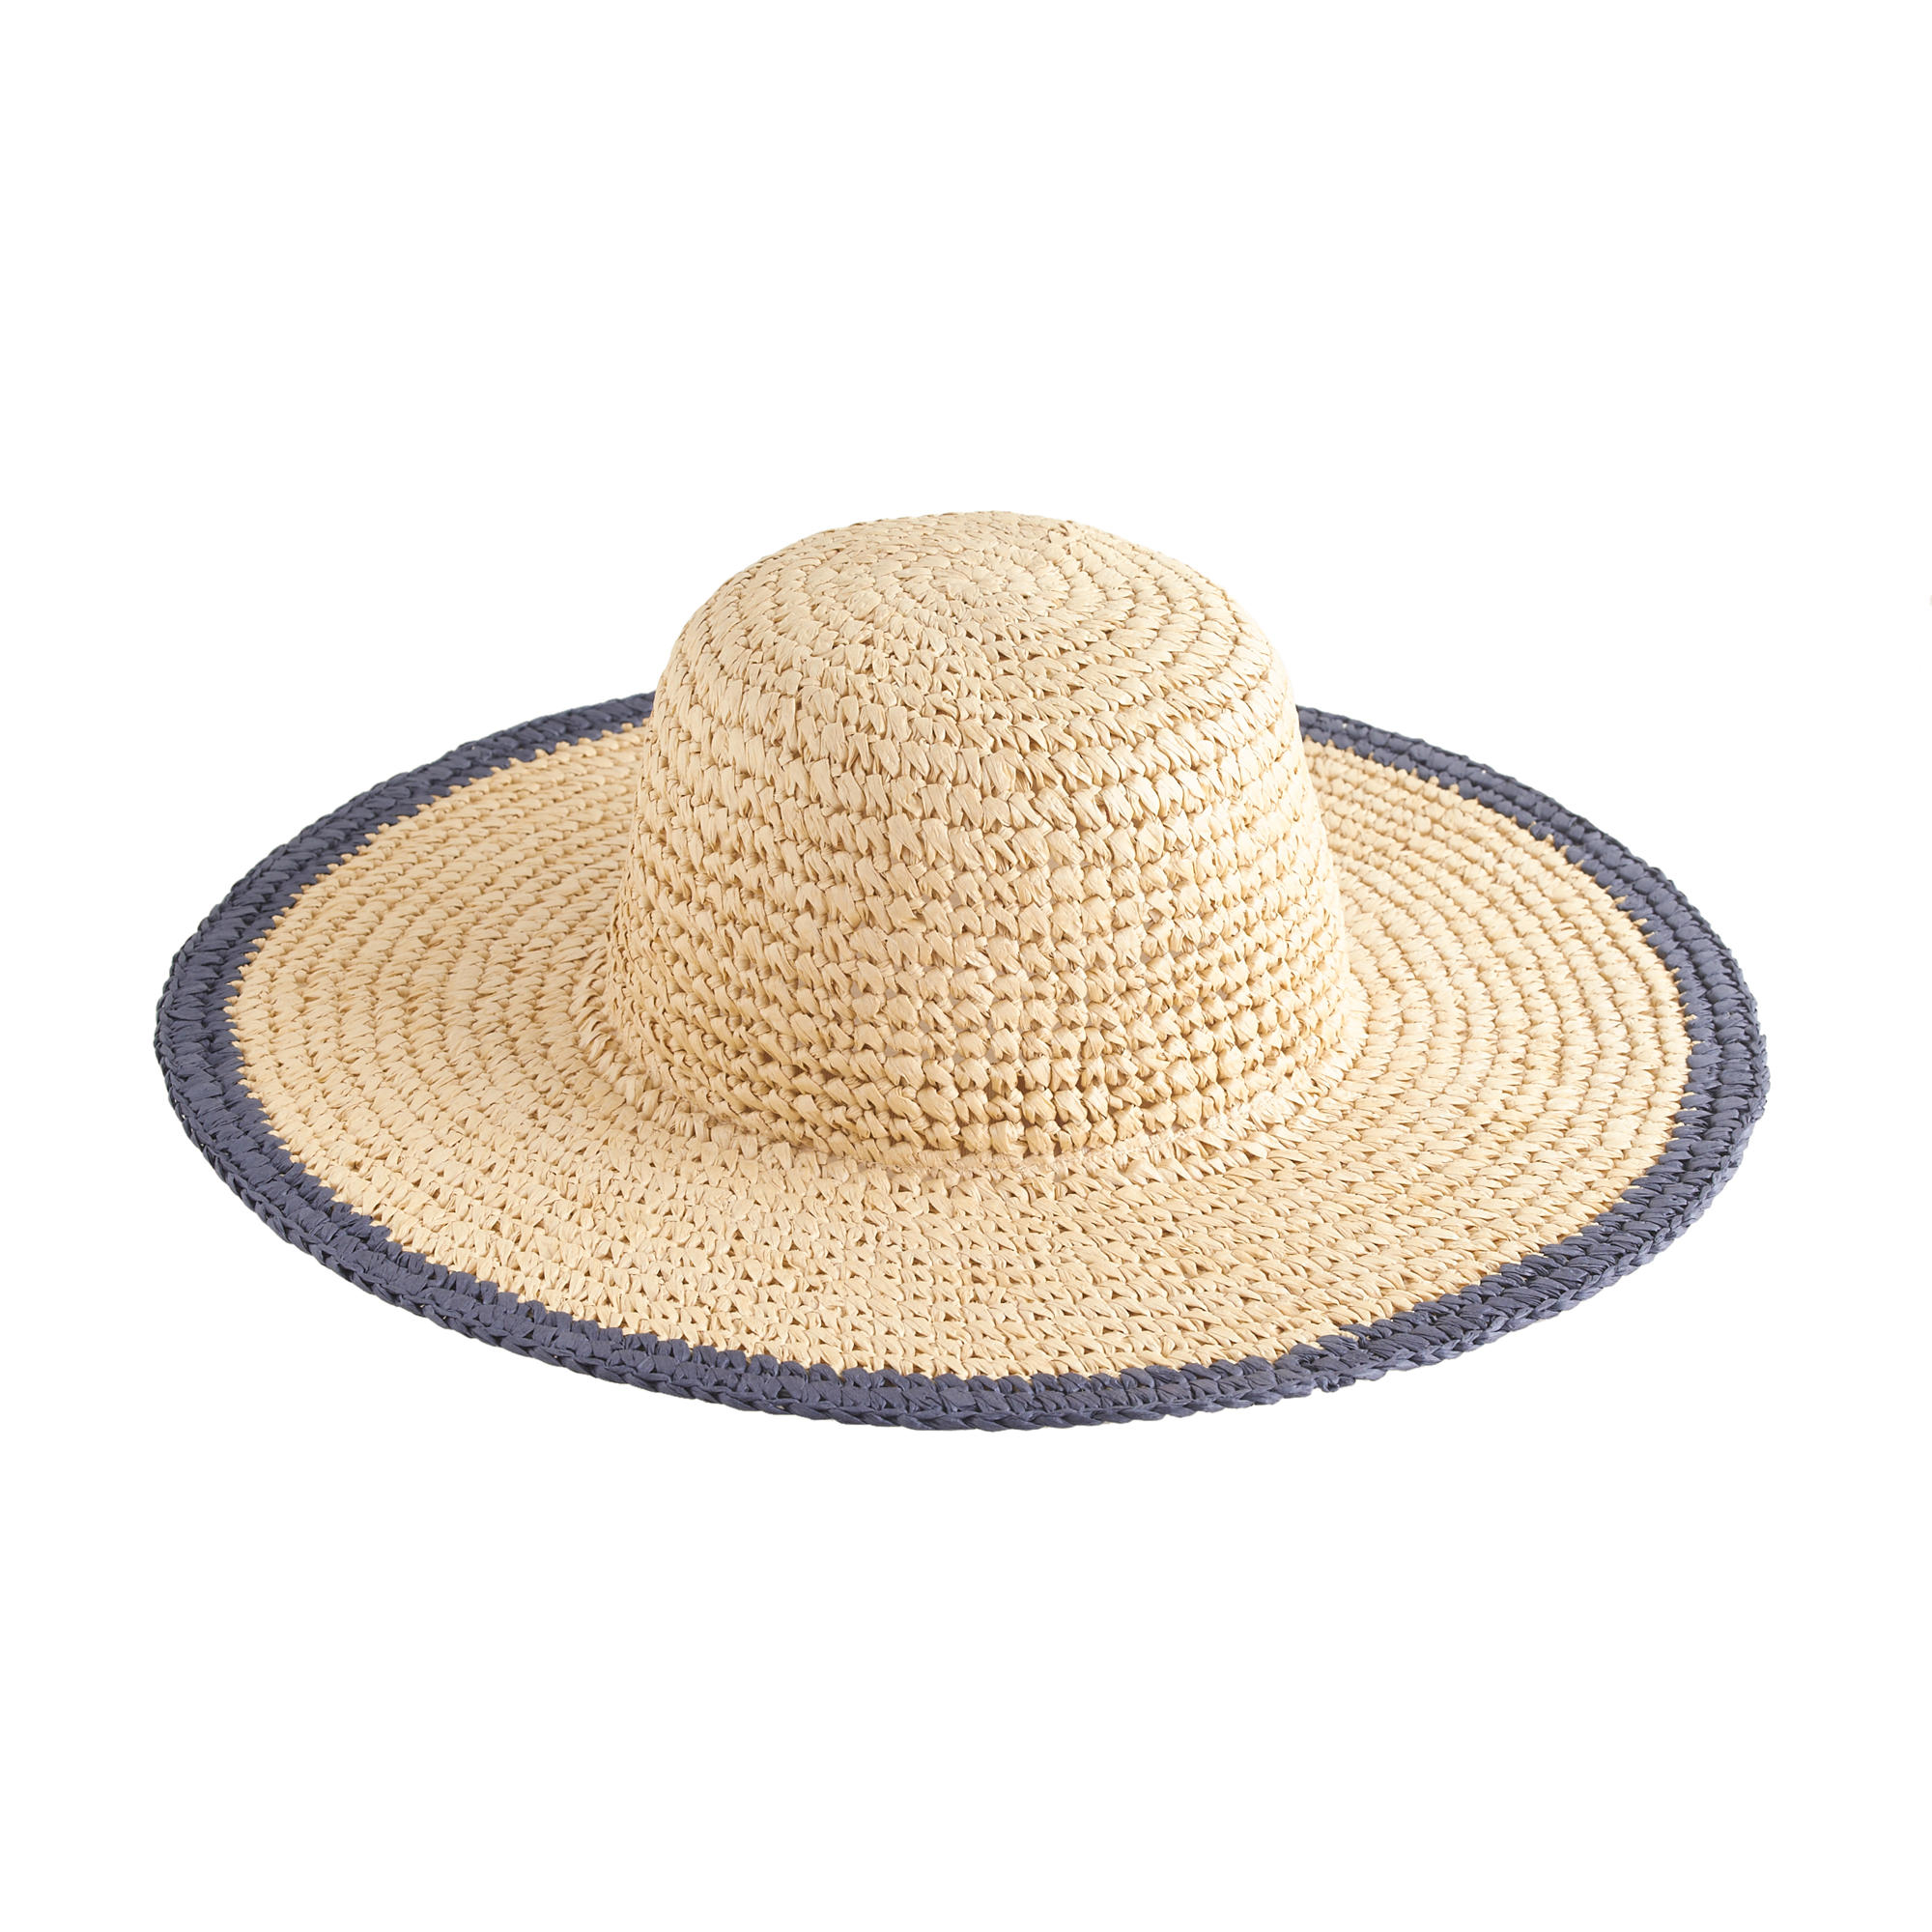 j crew straw hat with blue trim in lyst